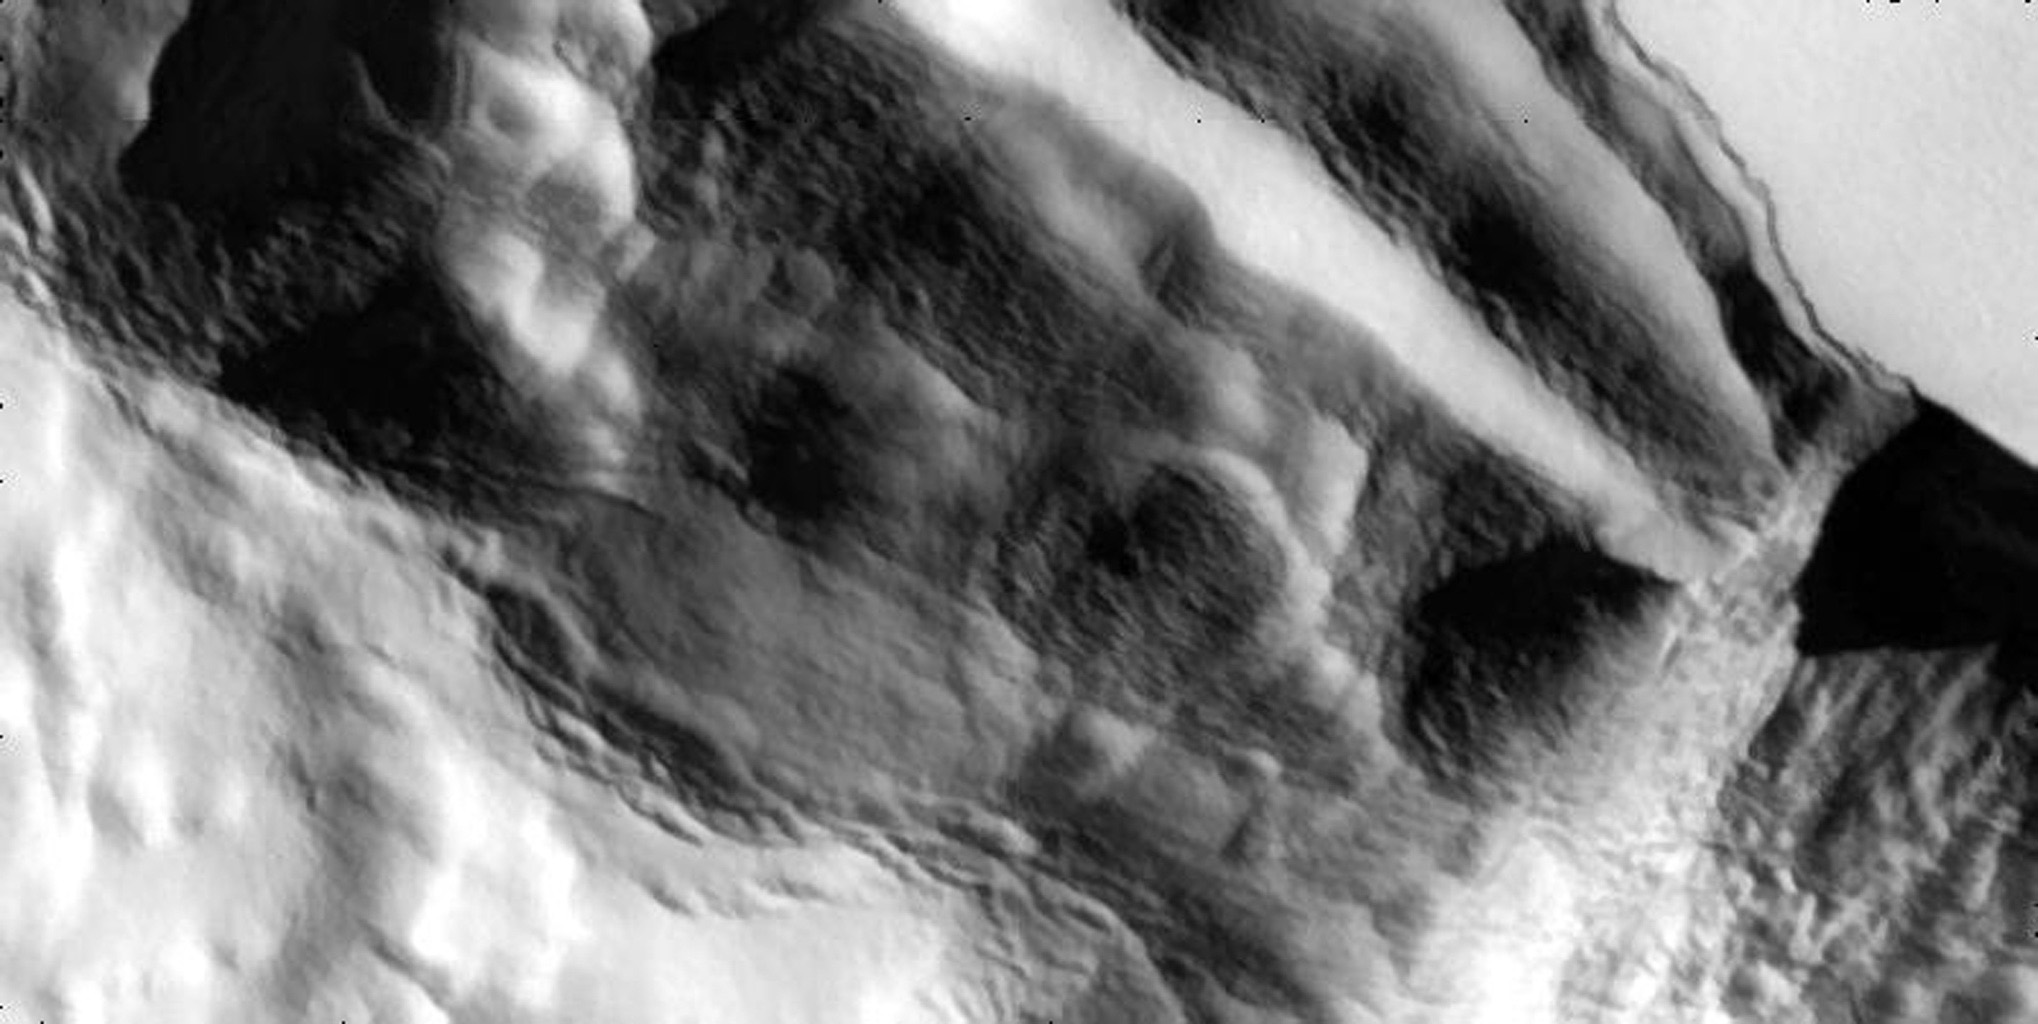 A cliff slumps outward in these high-resolution views that NASA's Galileo spacecraft captured the edge of a mountain named Telegonus Mensa on Jupiter's moon Io.